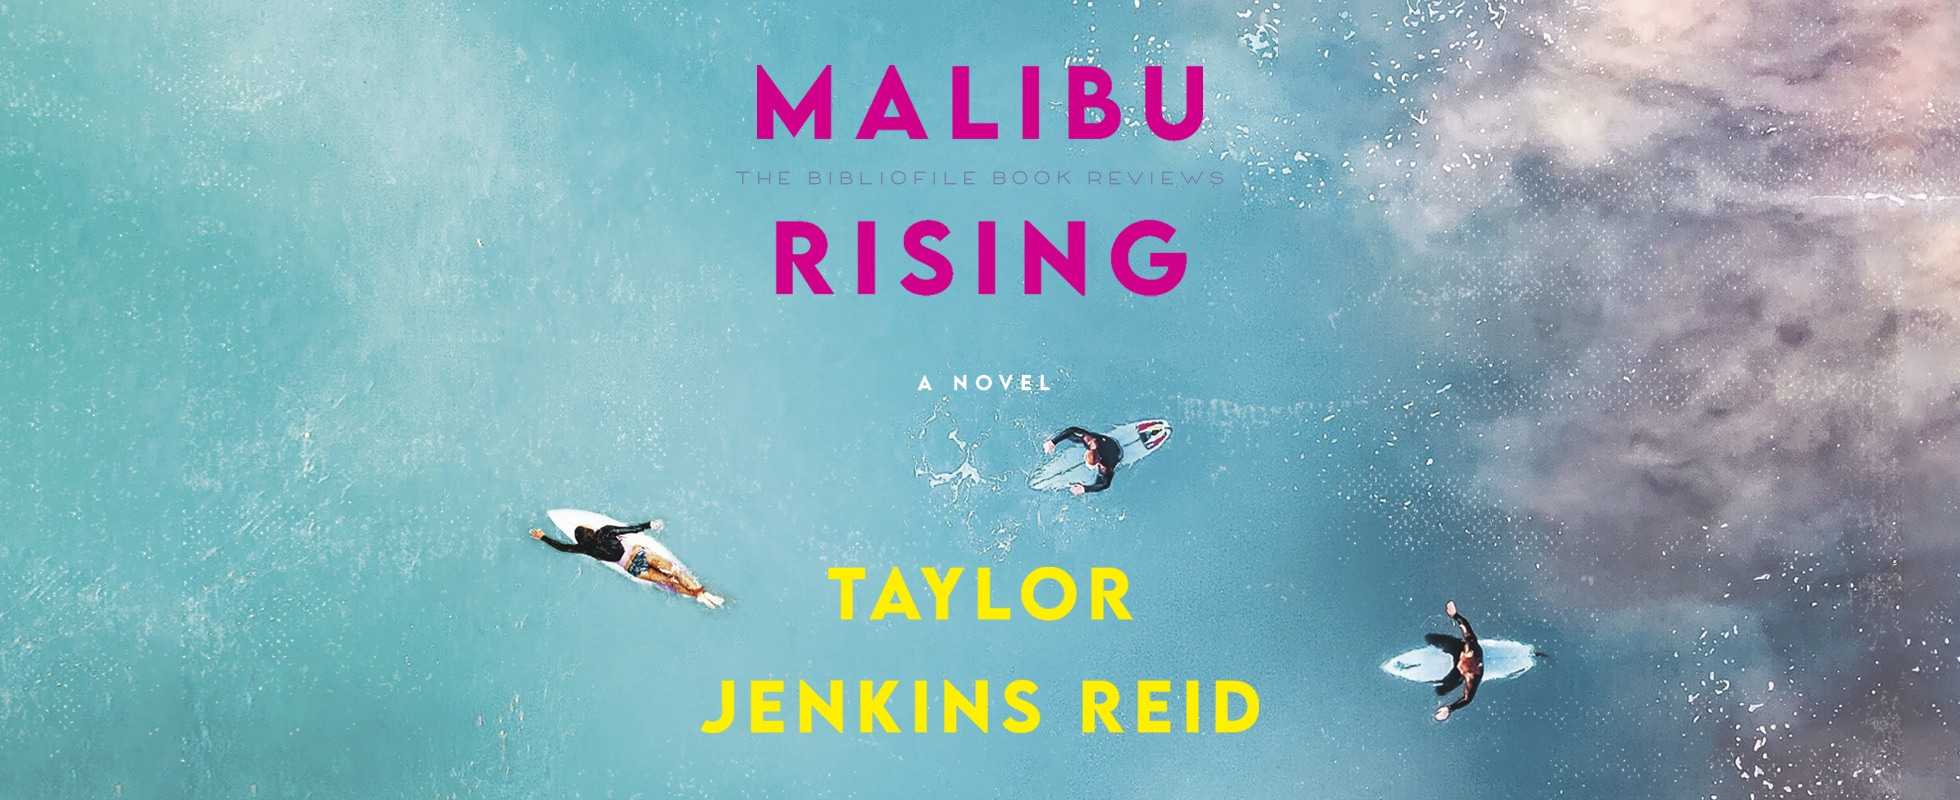 malibu rising by taylor jenkins reid book review summary synopsis recap ending spoilers